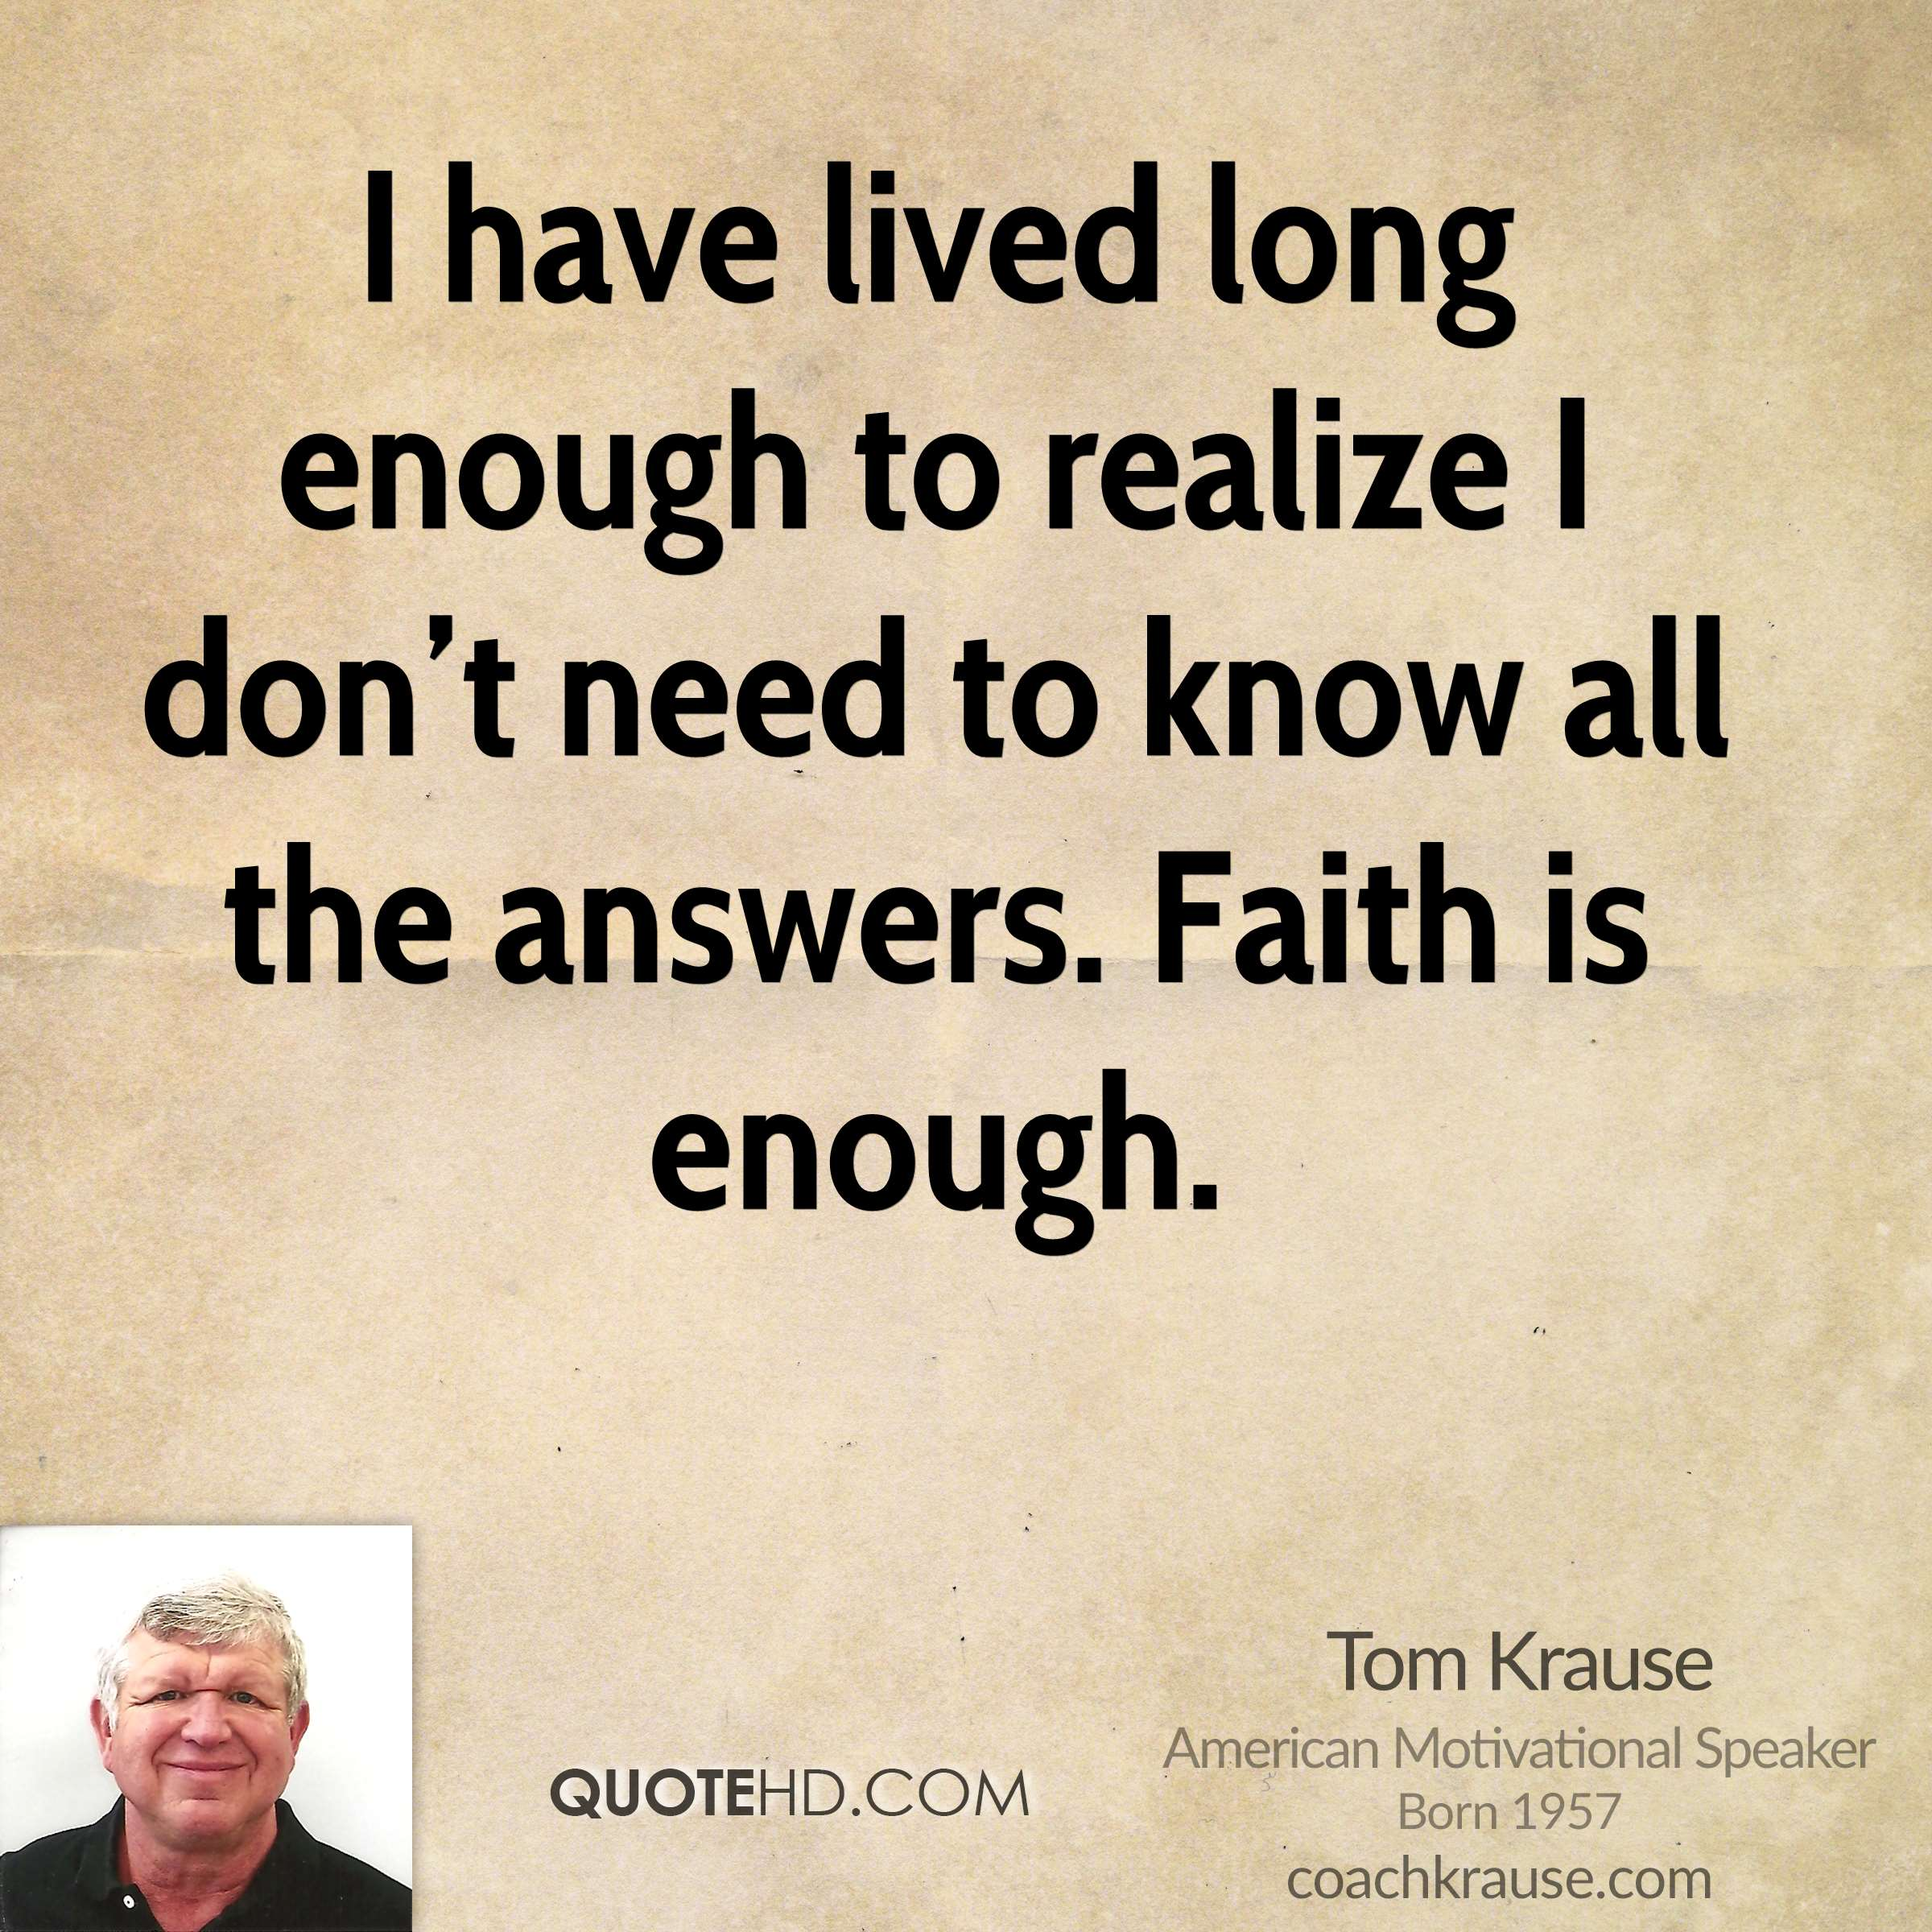 I have lived long enough to realize I don't need to know all the answers. Faith is enough.